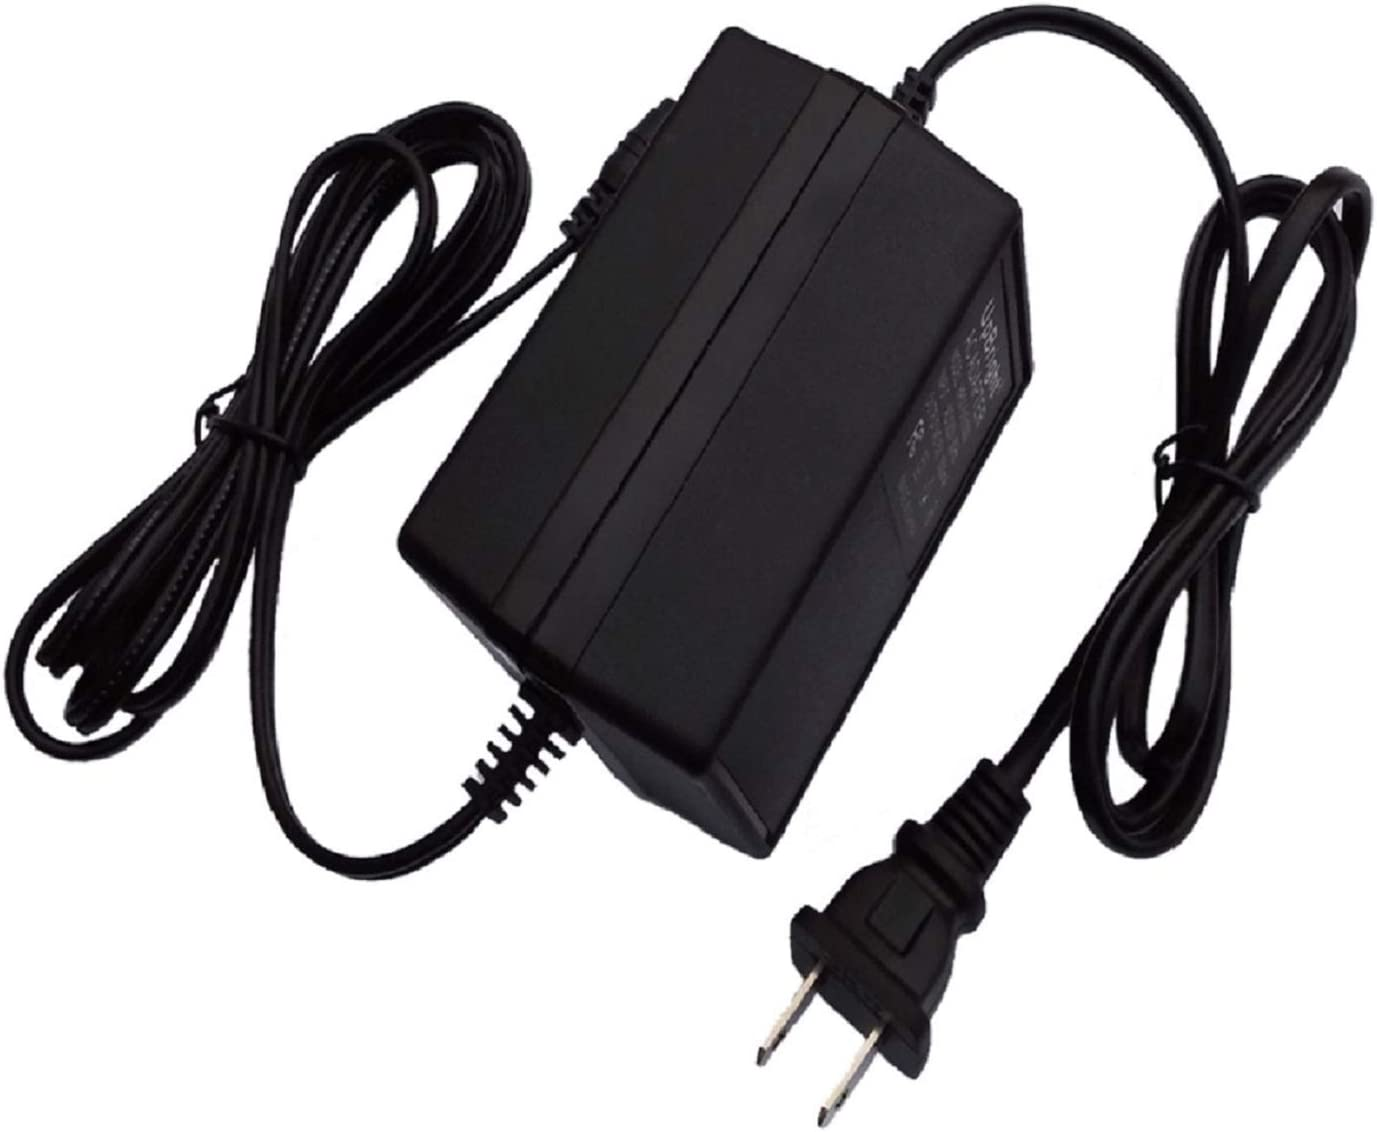 SupplySource AC Adapter for Tranquil Ease FS1200-3000 FS12003000 12V 3A 3000mA Power Charger